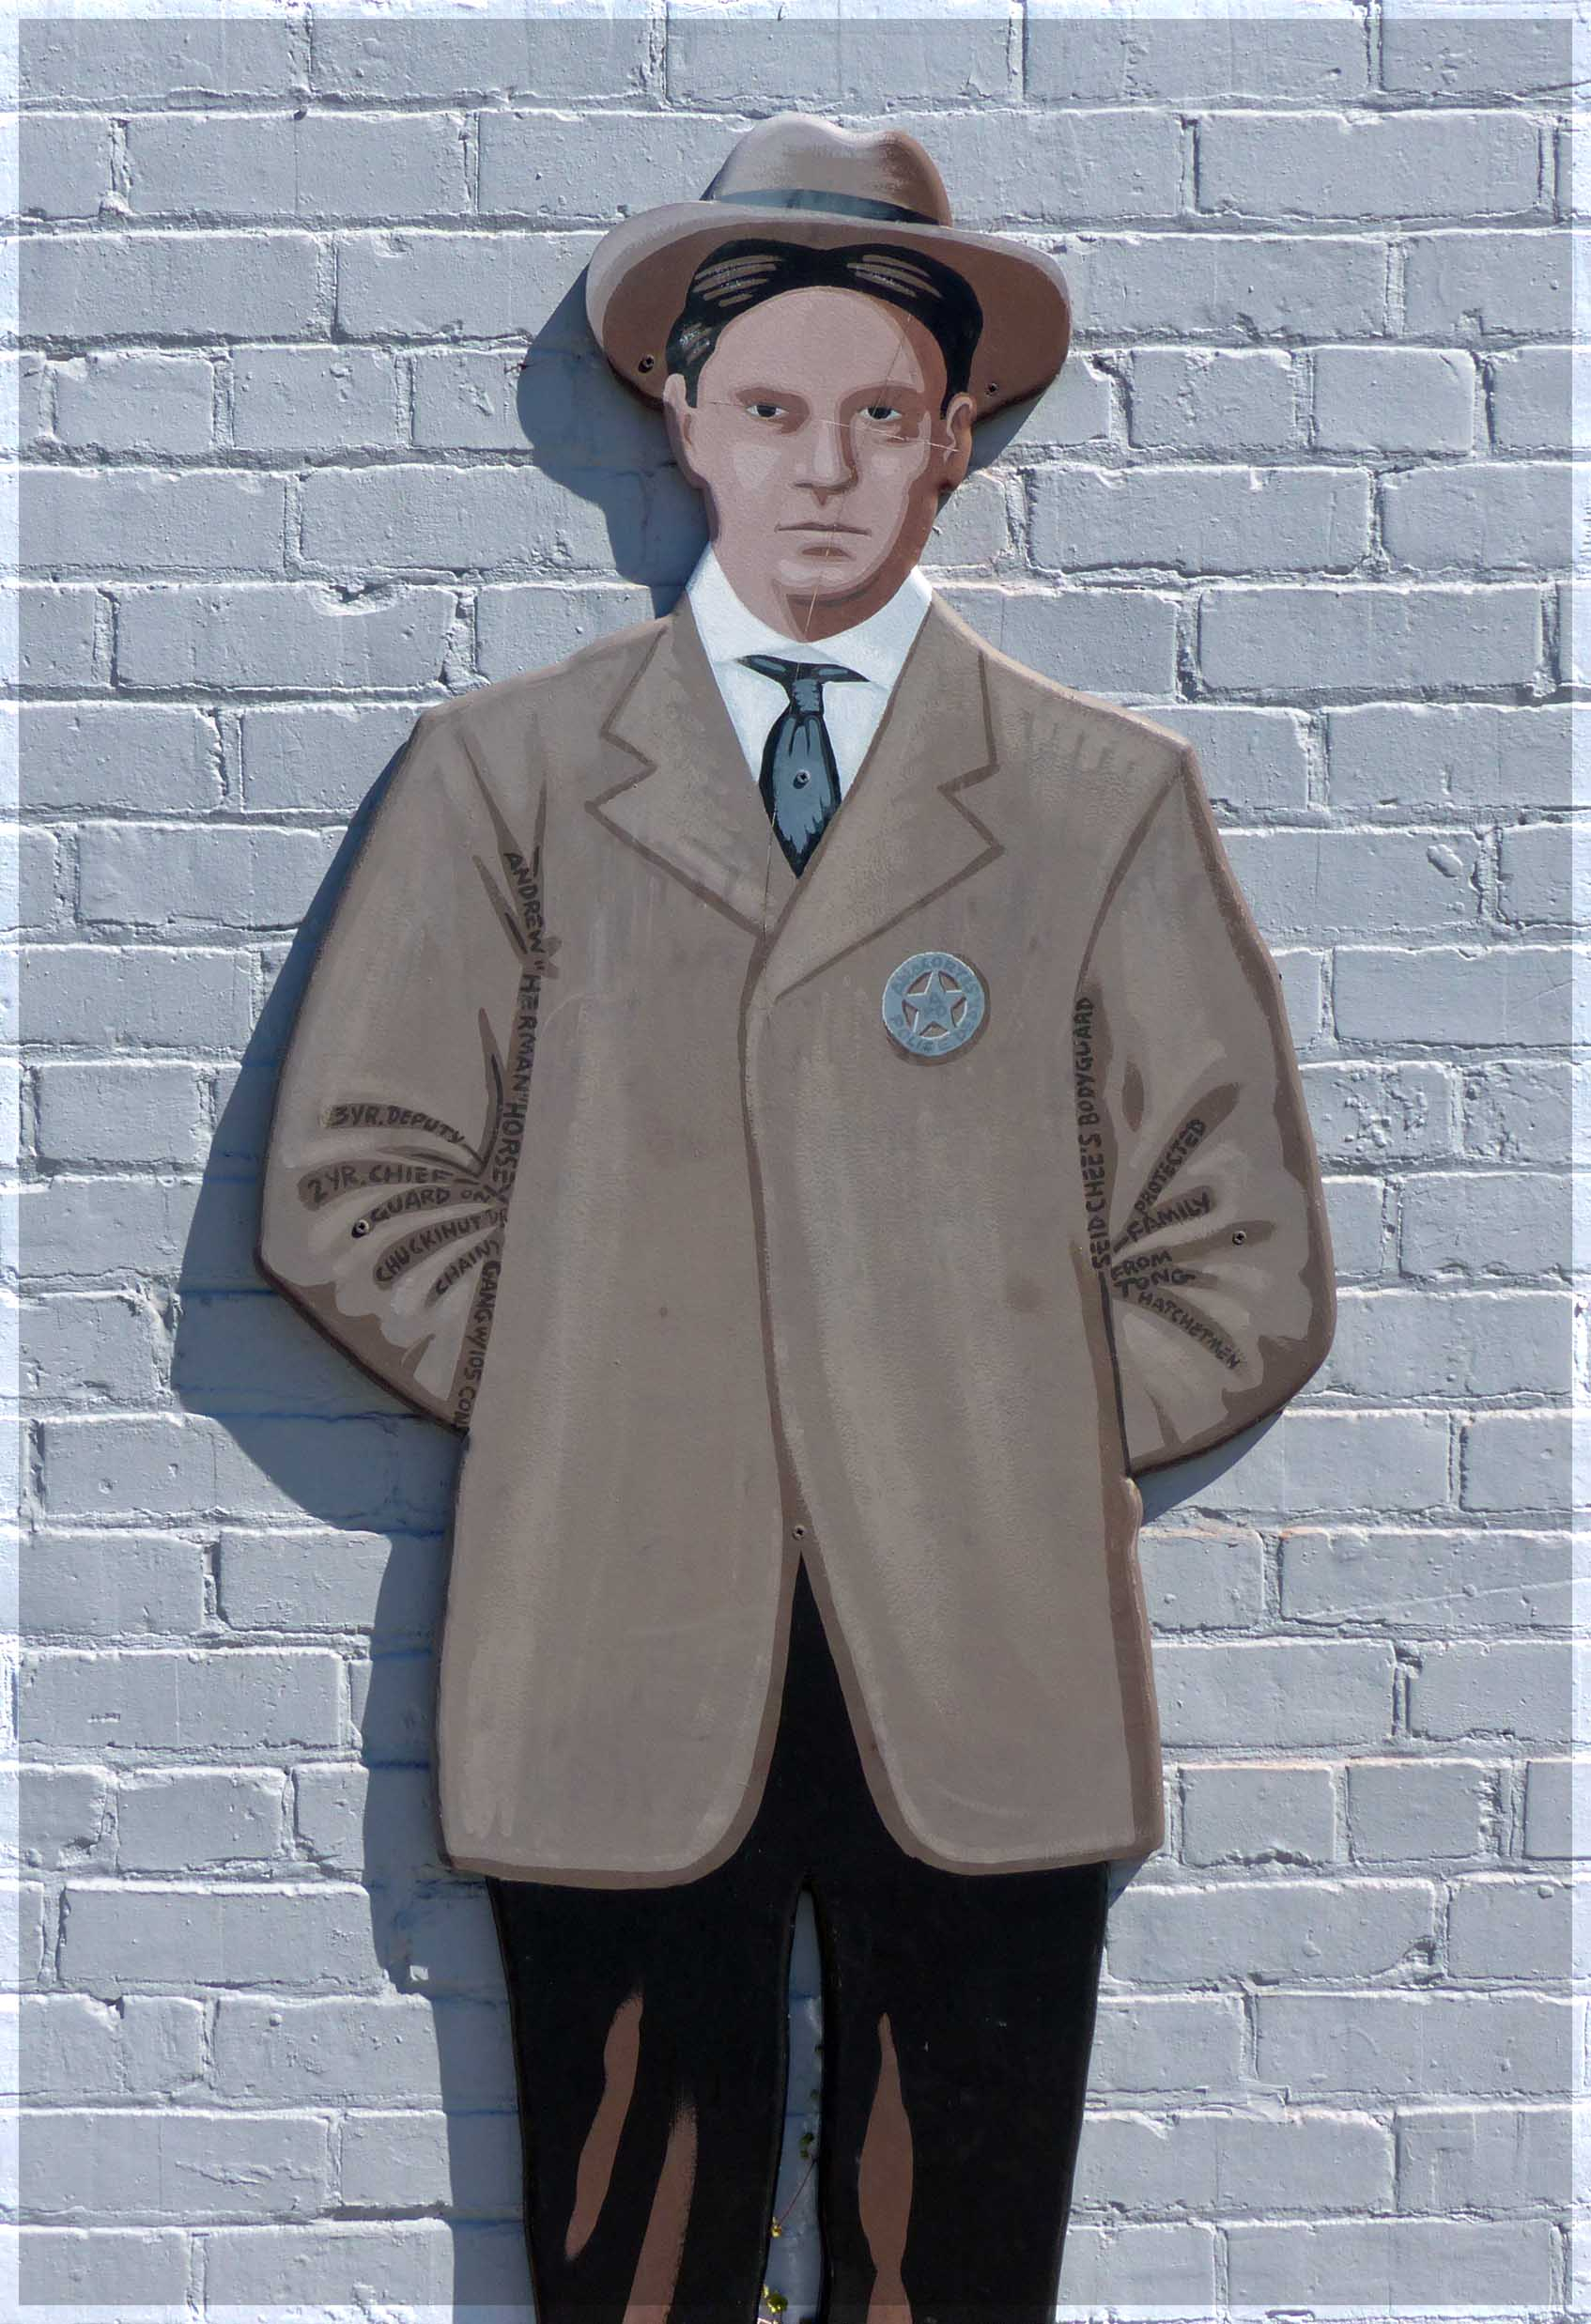 Mural of man with hat and sheriff's badge